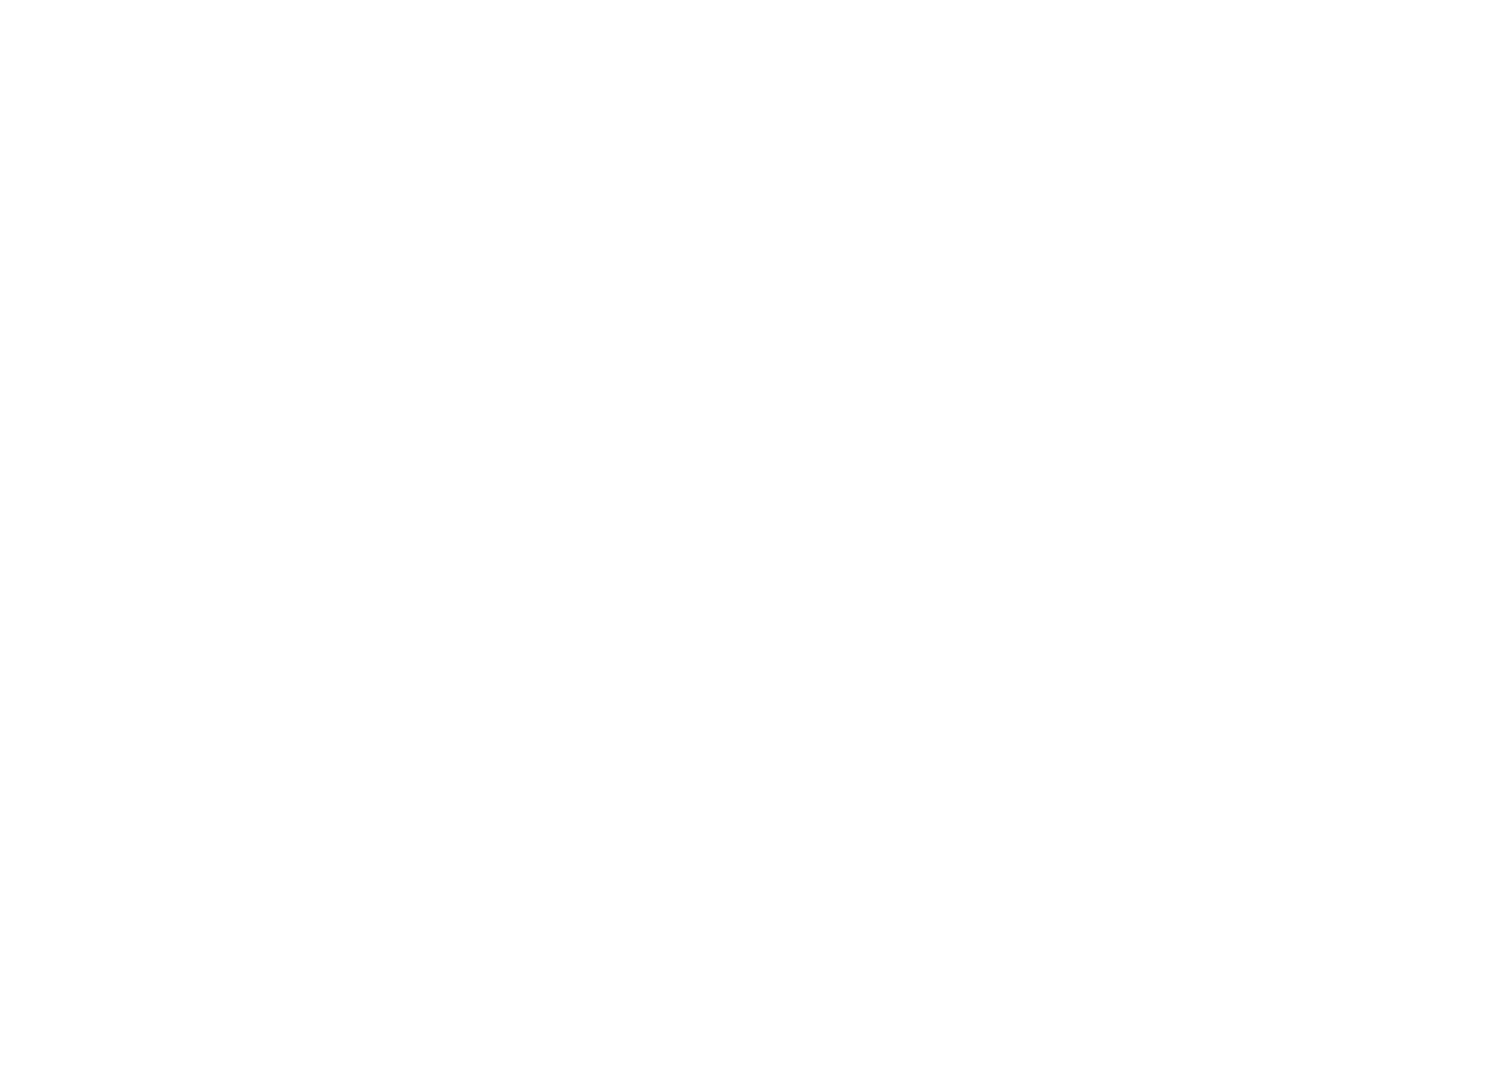 Mountainview Therapeutics